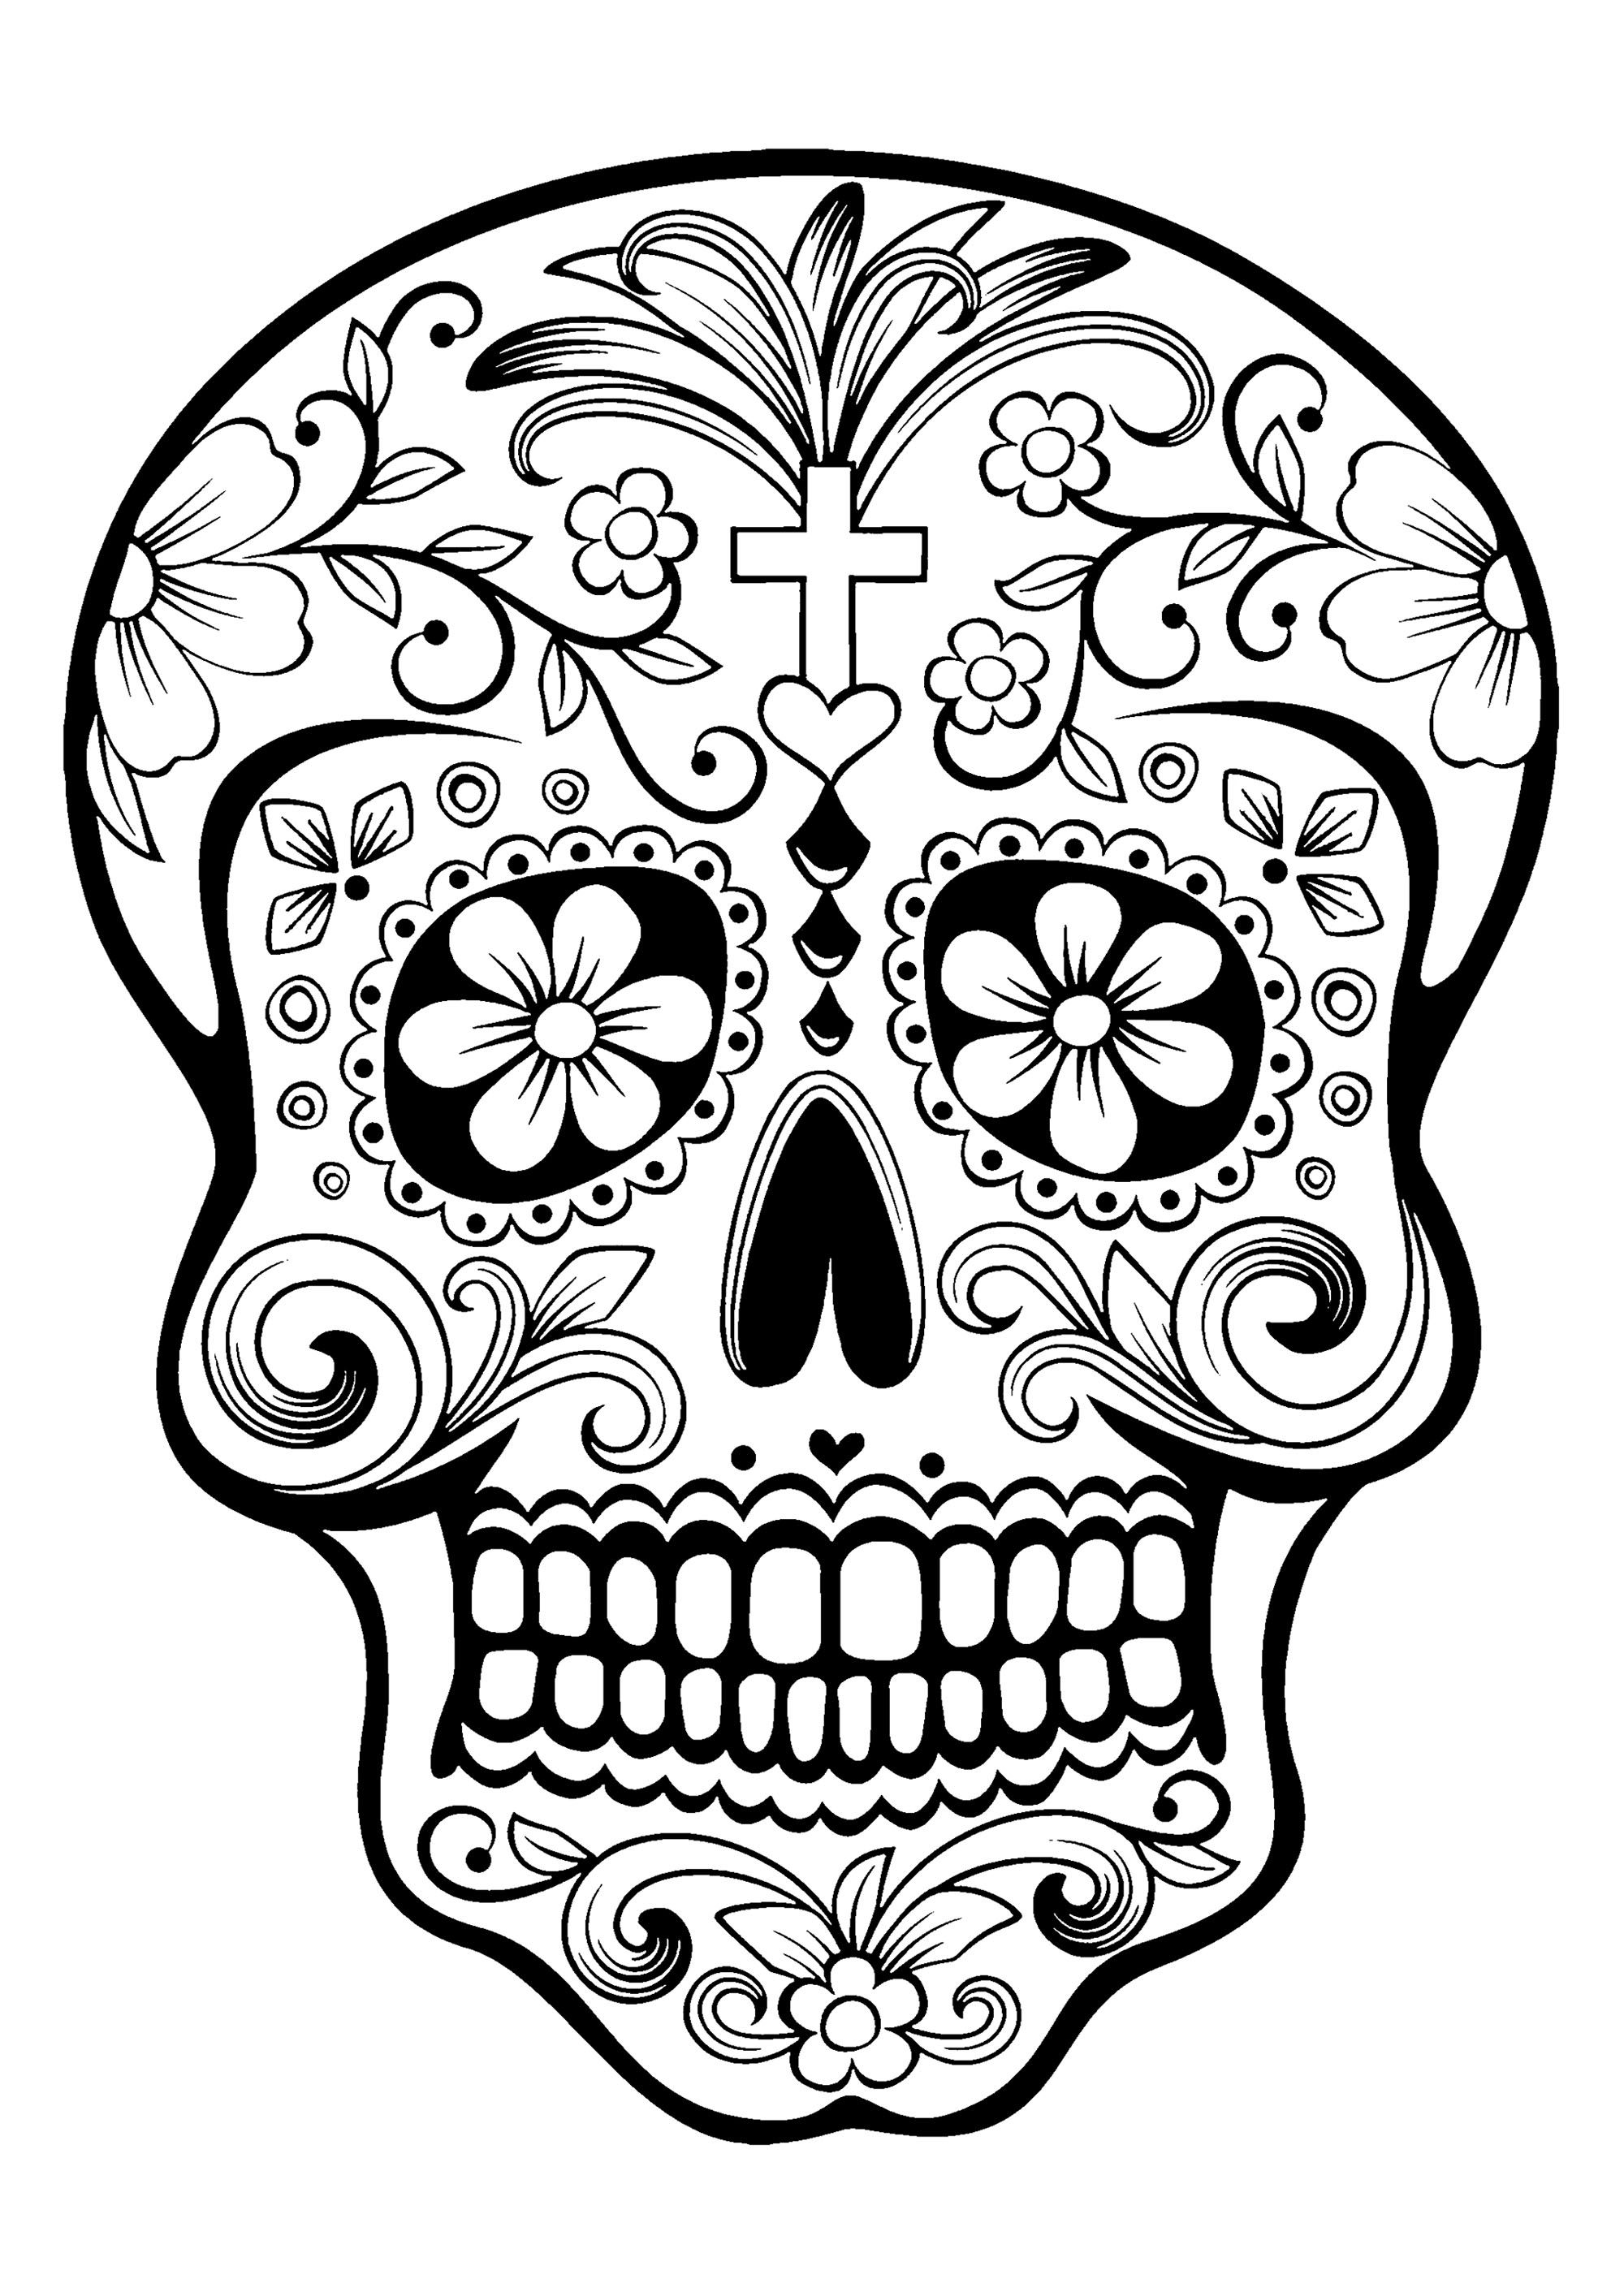 day of the dead skull coloring page sugar skull coloring pages coloring home the of day page dead skull coloring